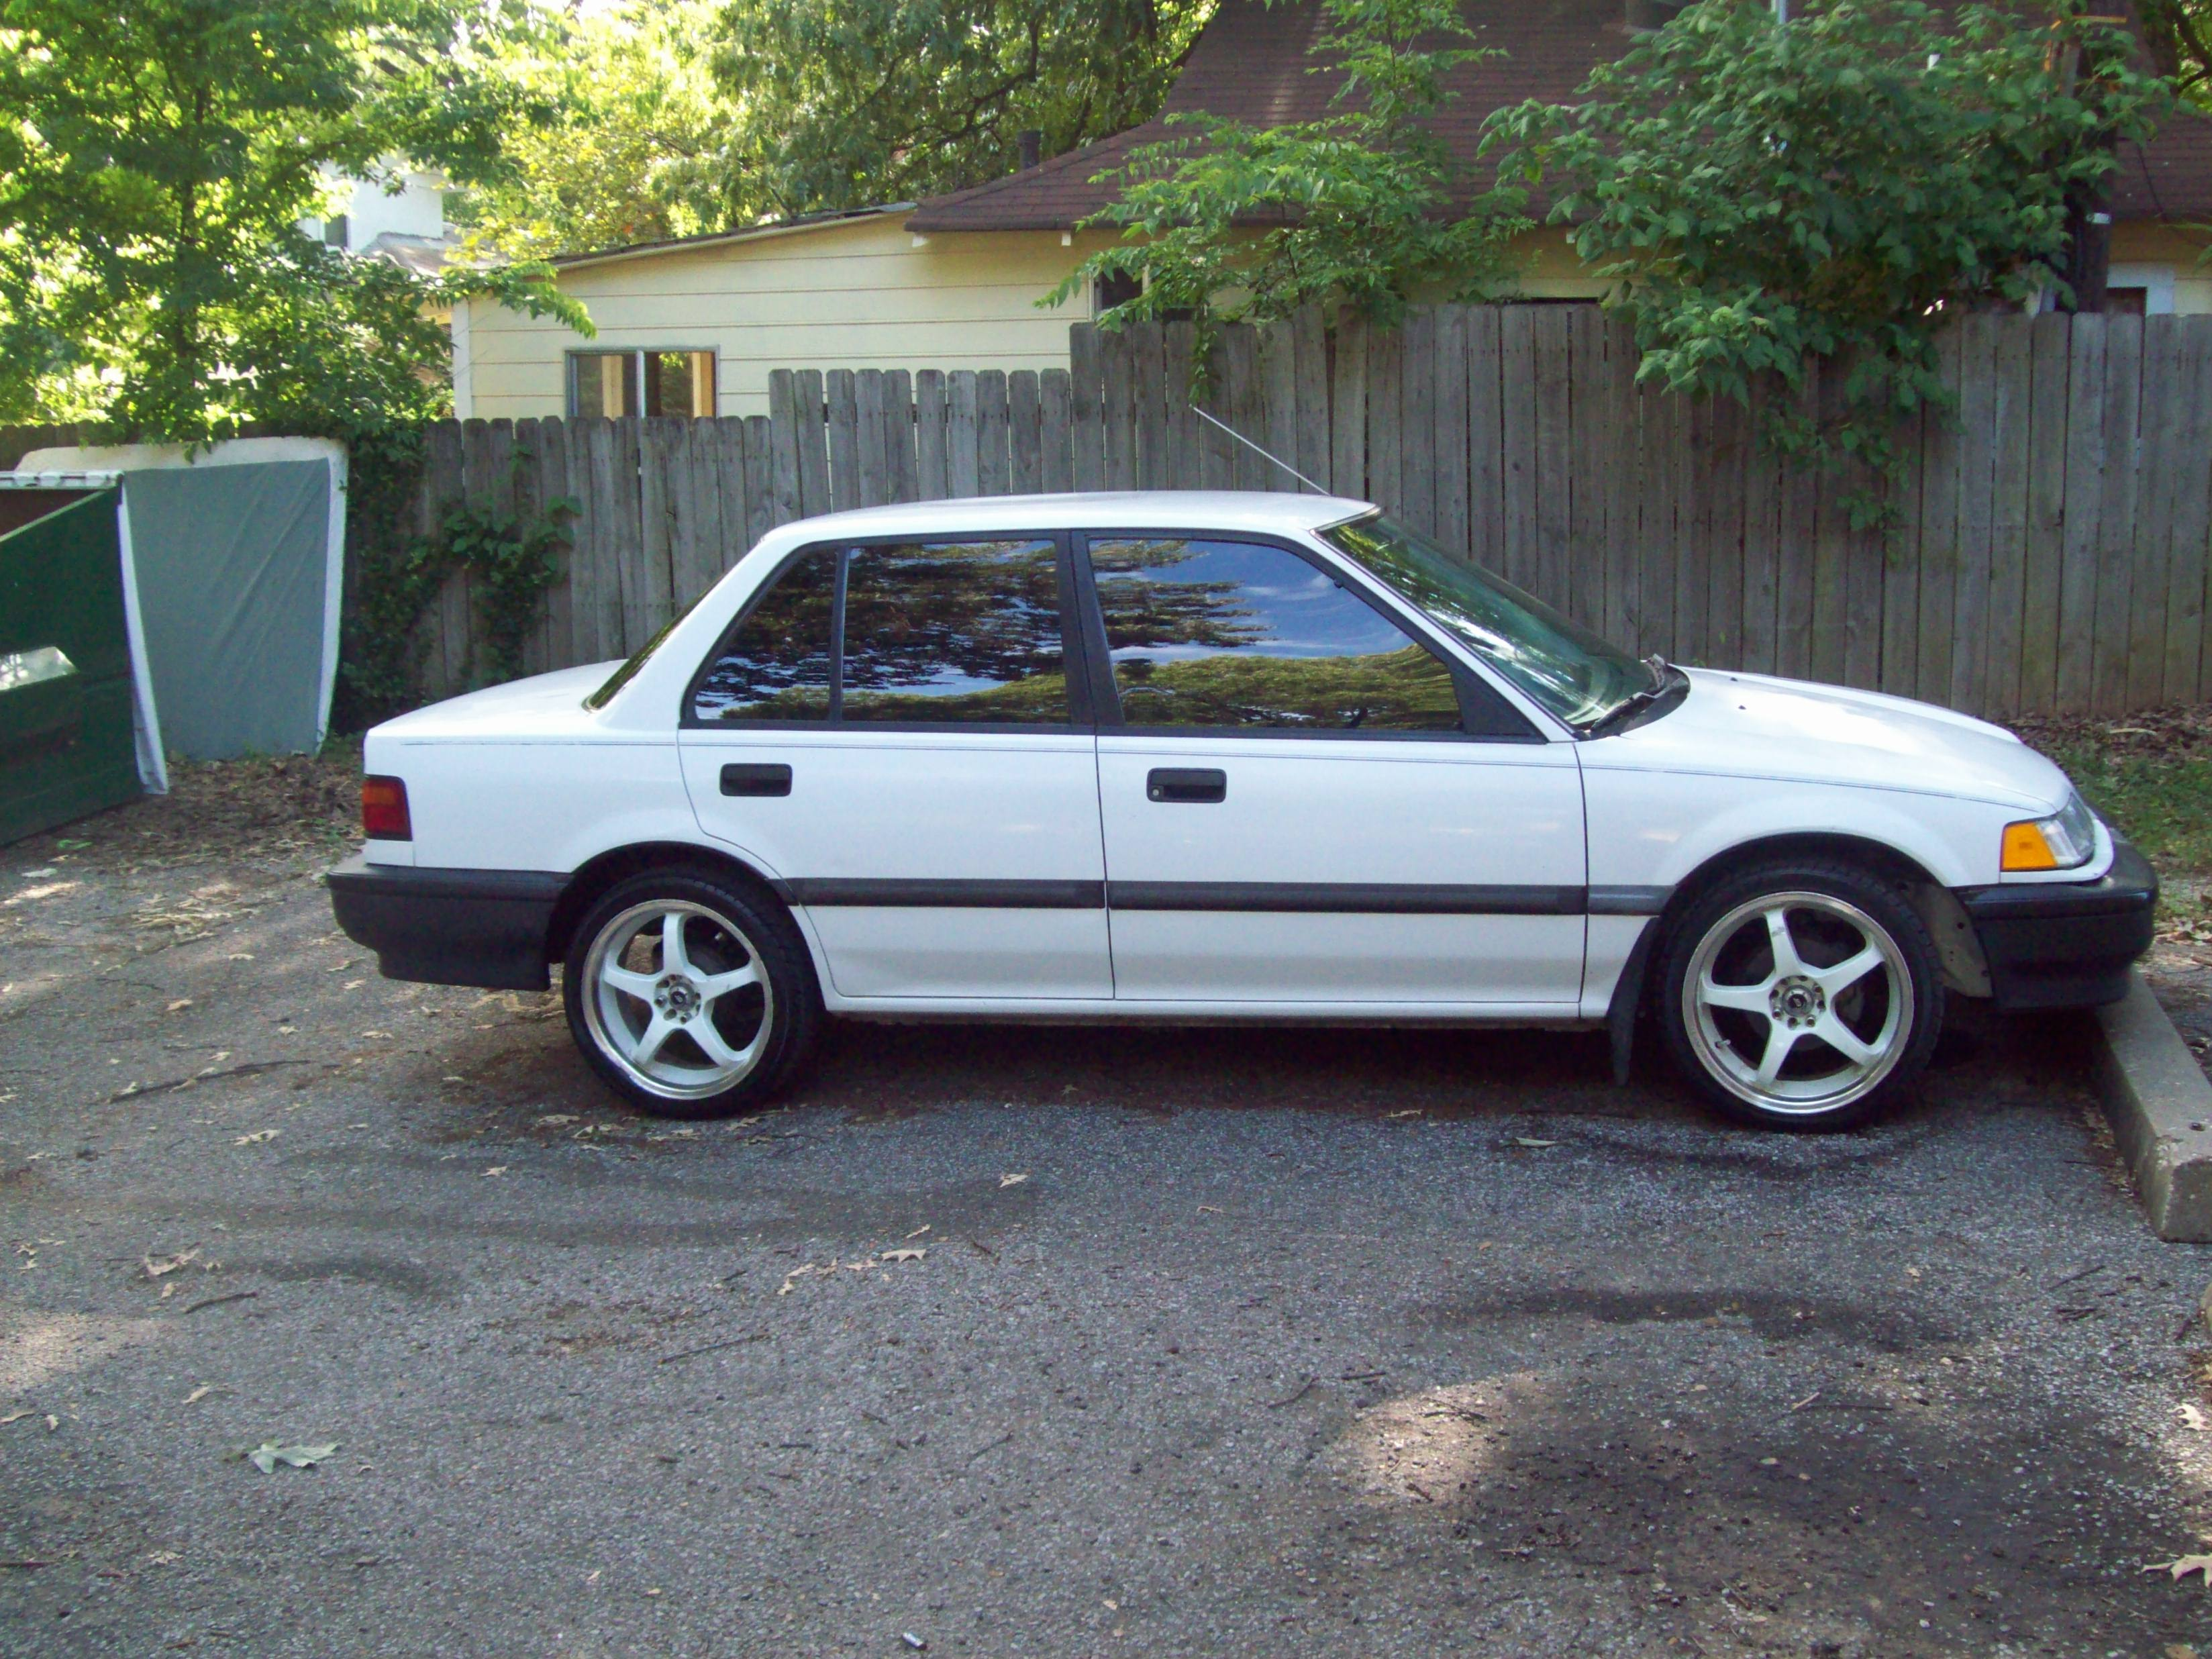 Mercedes Benz Of Memphis >> memphis_1086 1991 Honda Civic Specs, Photos, Modification Info at CarDomain